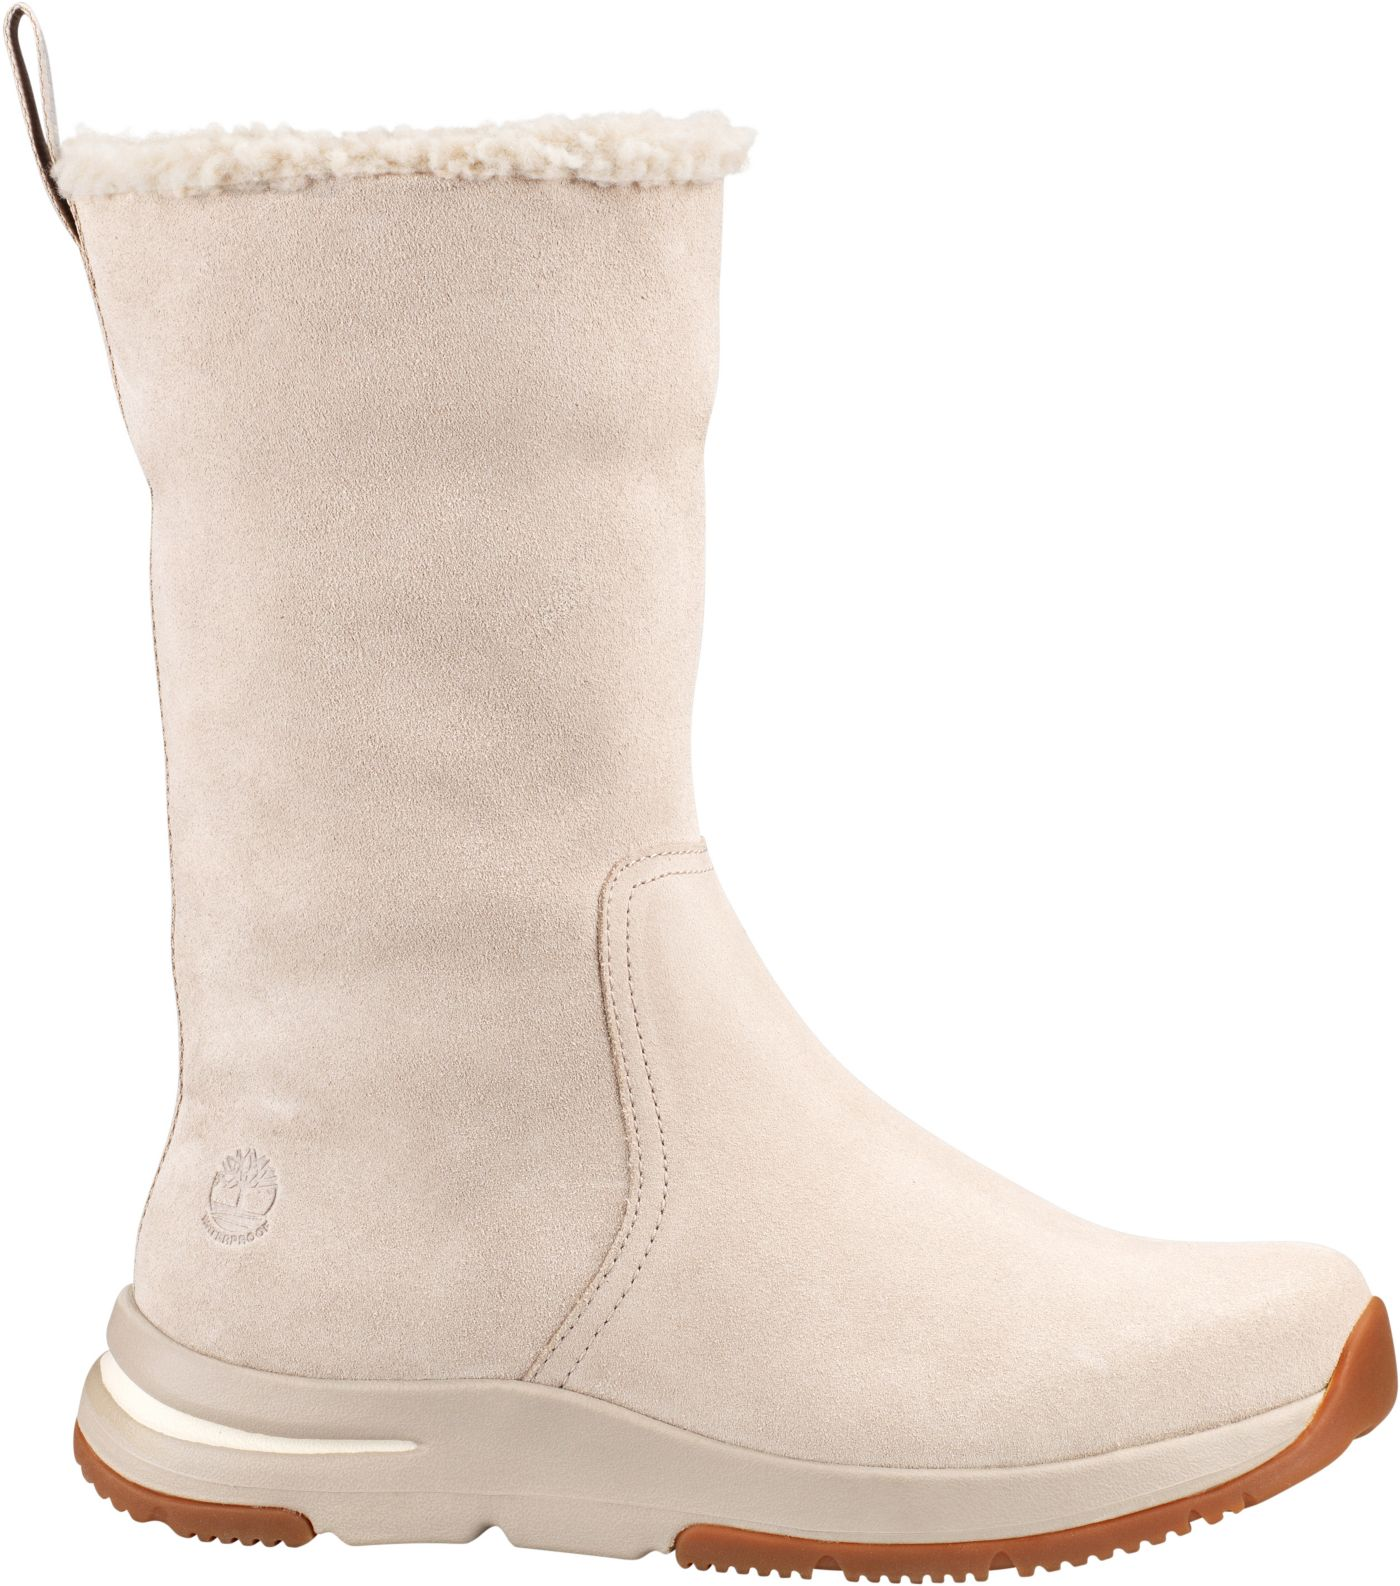 Timberland Women's Mabel Pull-On 200g Waterproof Casual Boots